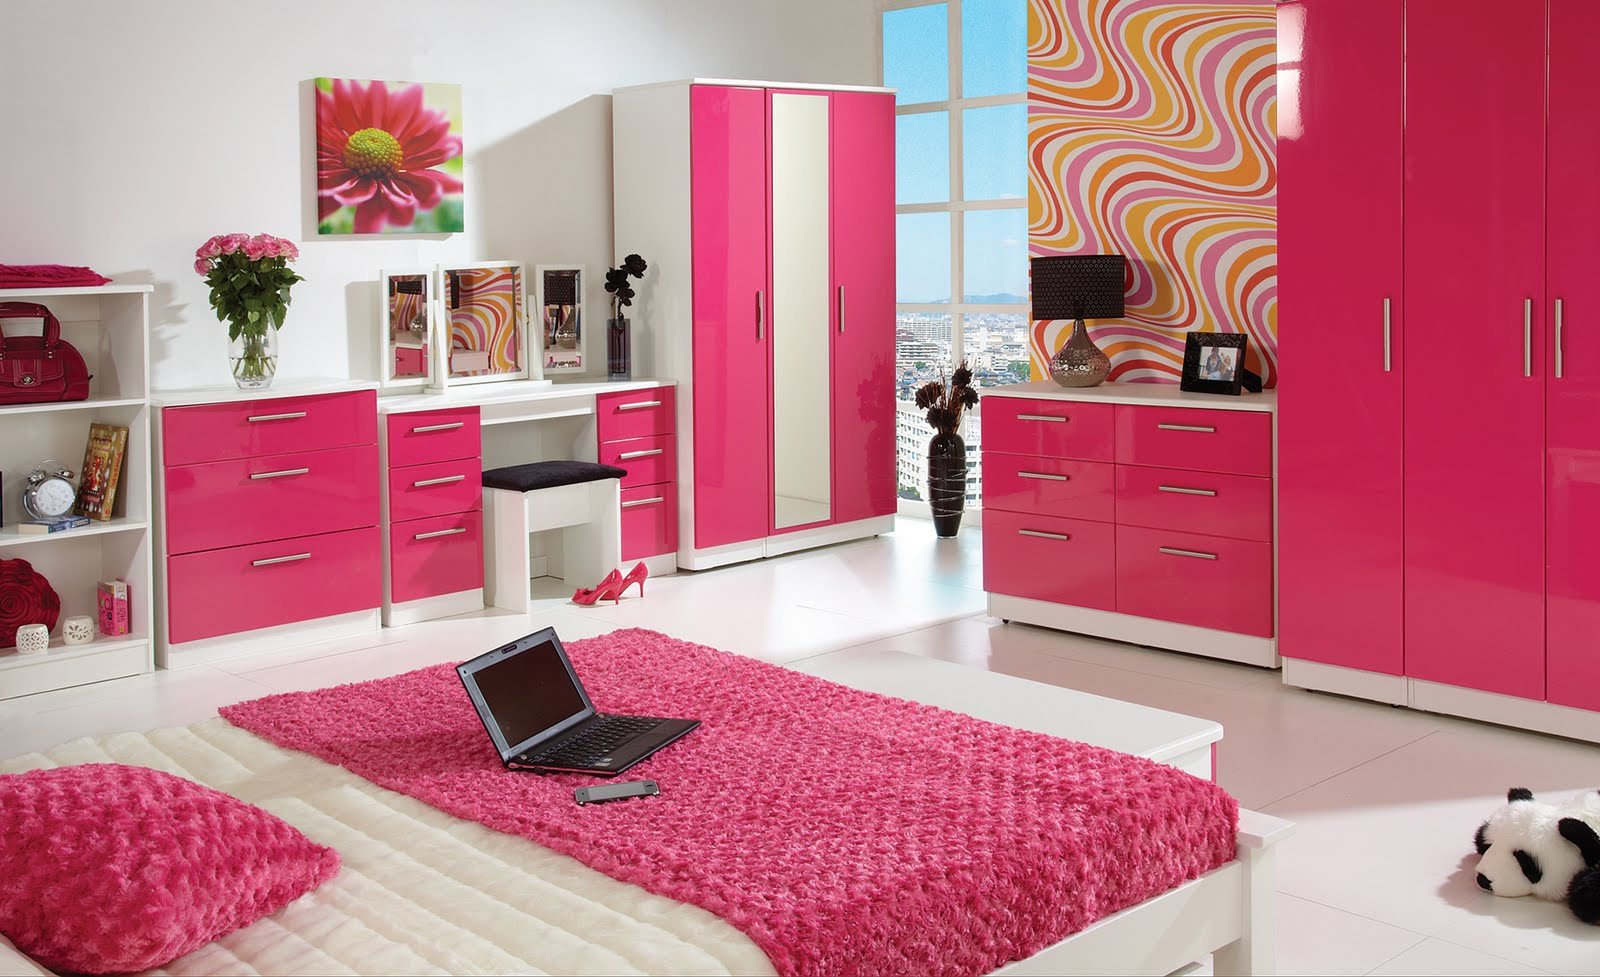 Complete Teen Bedroom using Lovely Feng Shui Colors near White Bed and Pink Duvet facing Pink Dressers